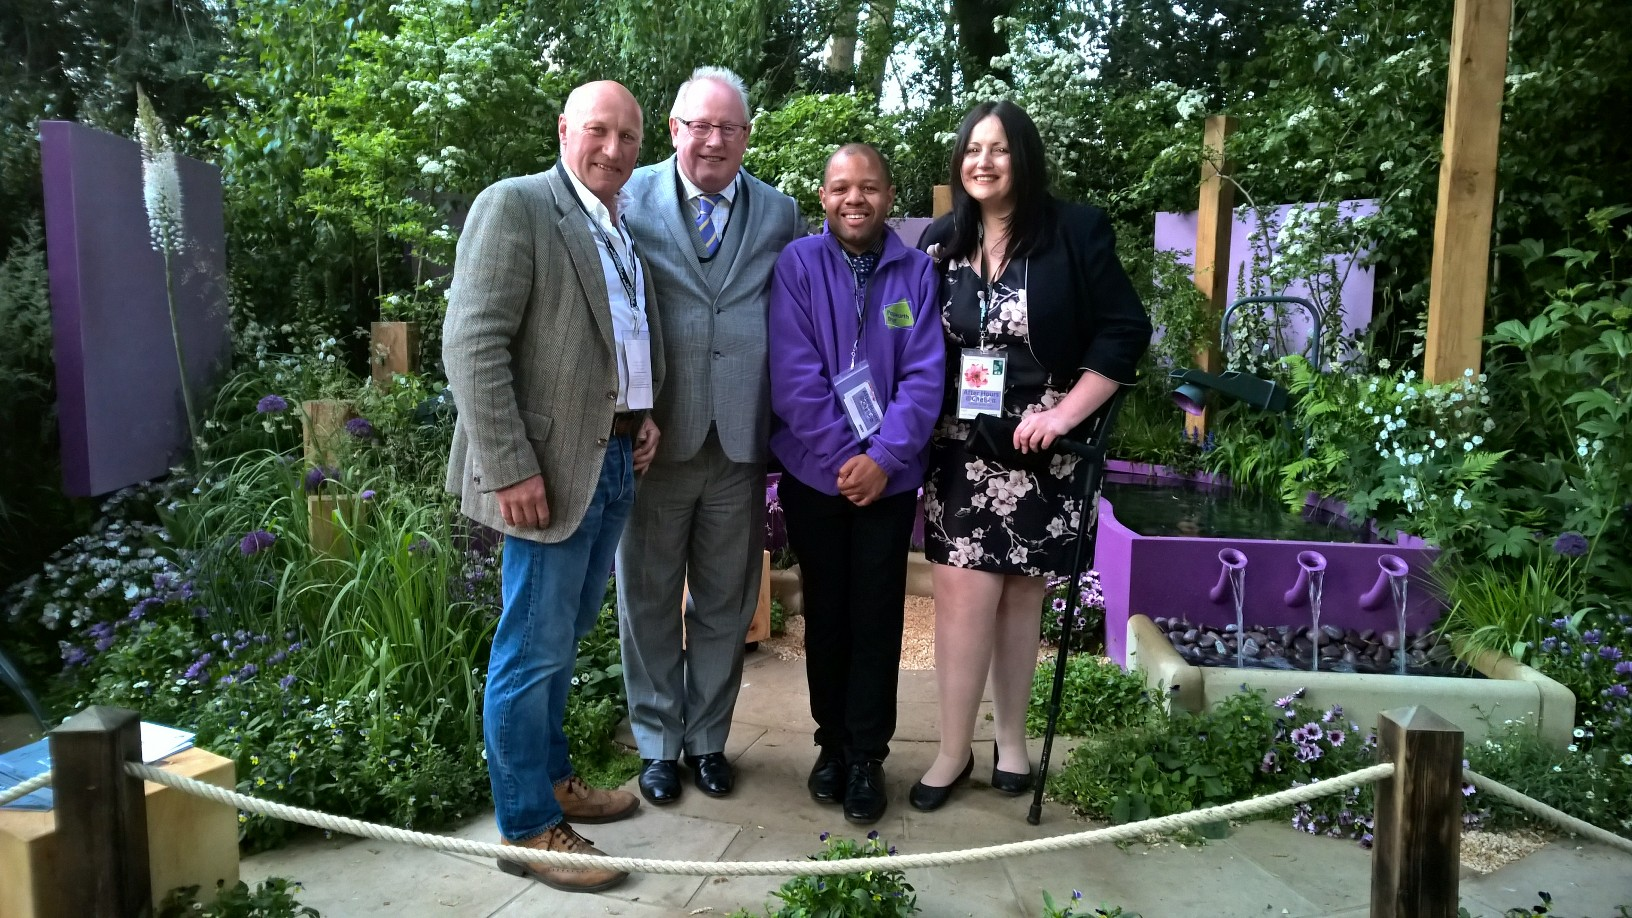 Peter Eustance MSGD – Garden Designer, Symphonic Gardens , Ian Carr – CEO, Prettys, Leroy Myers – Papworth Trust resident and Vicky McDermott – CEO, Papworth Trust